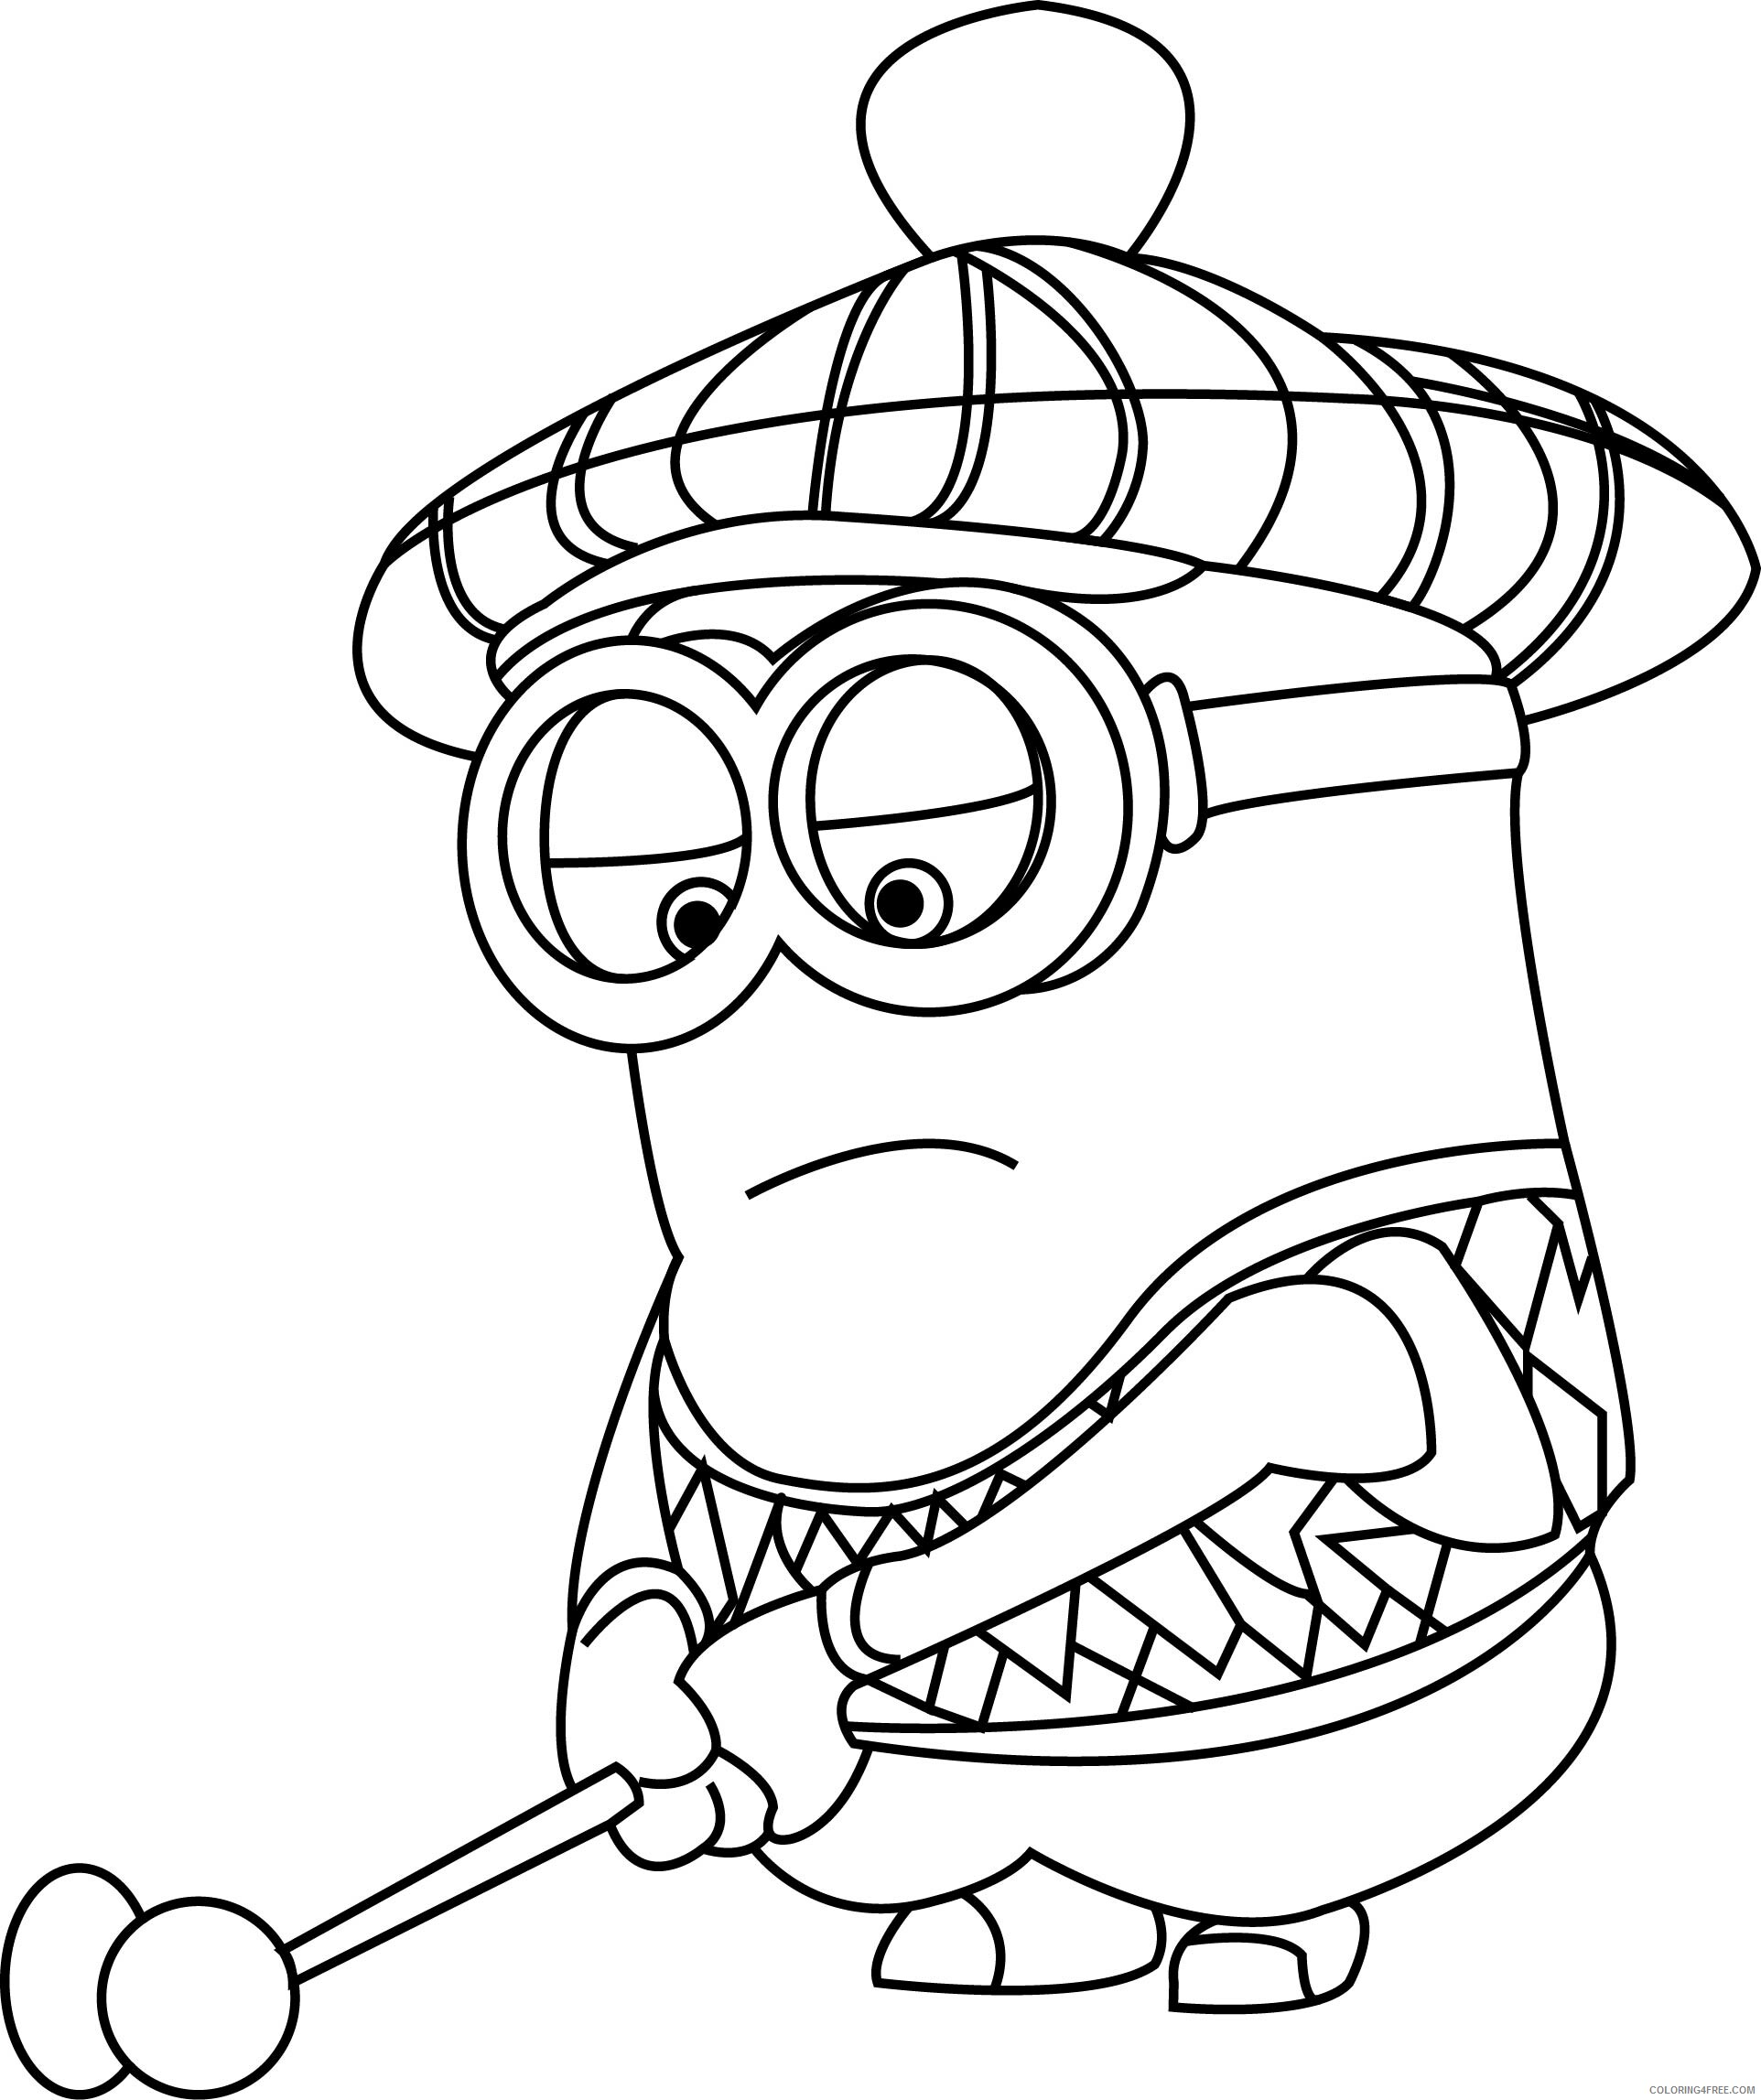 Minions Coloring Pages TV Film minion kevin playing golf a18 ...